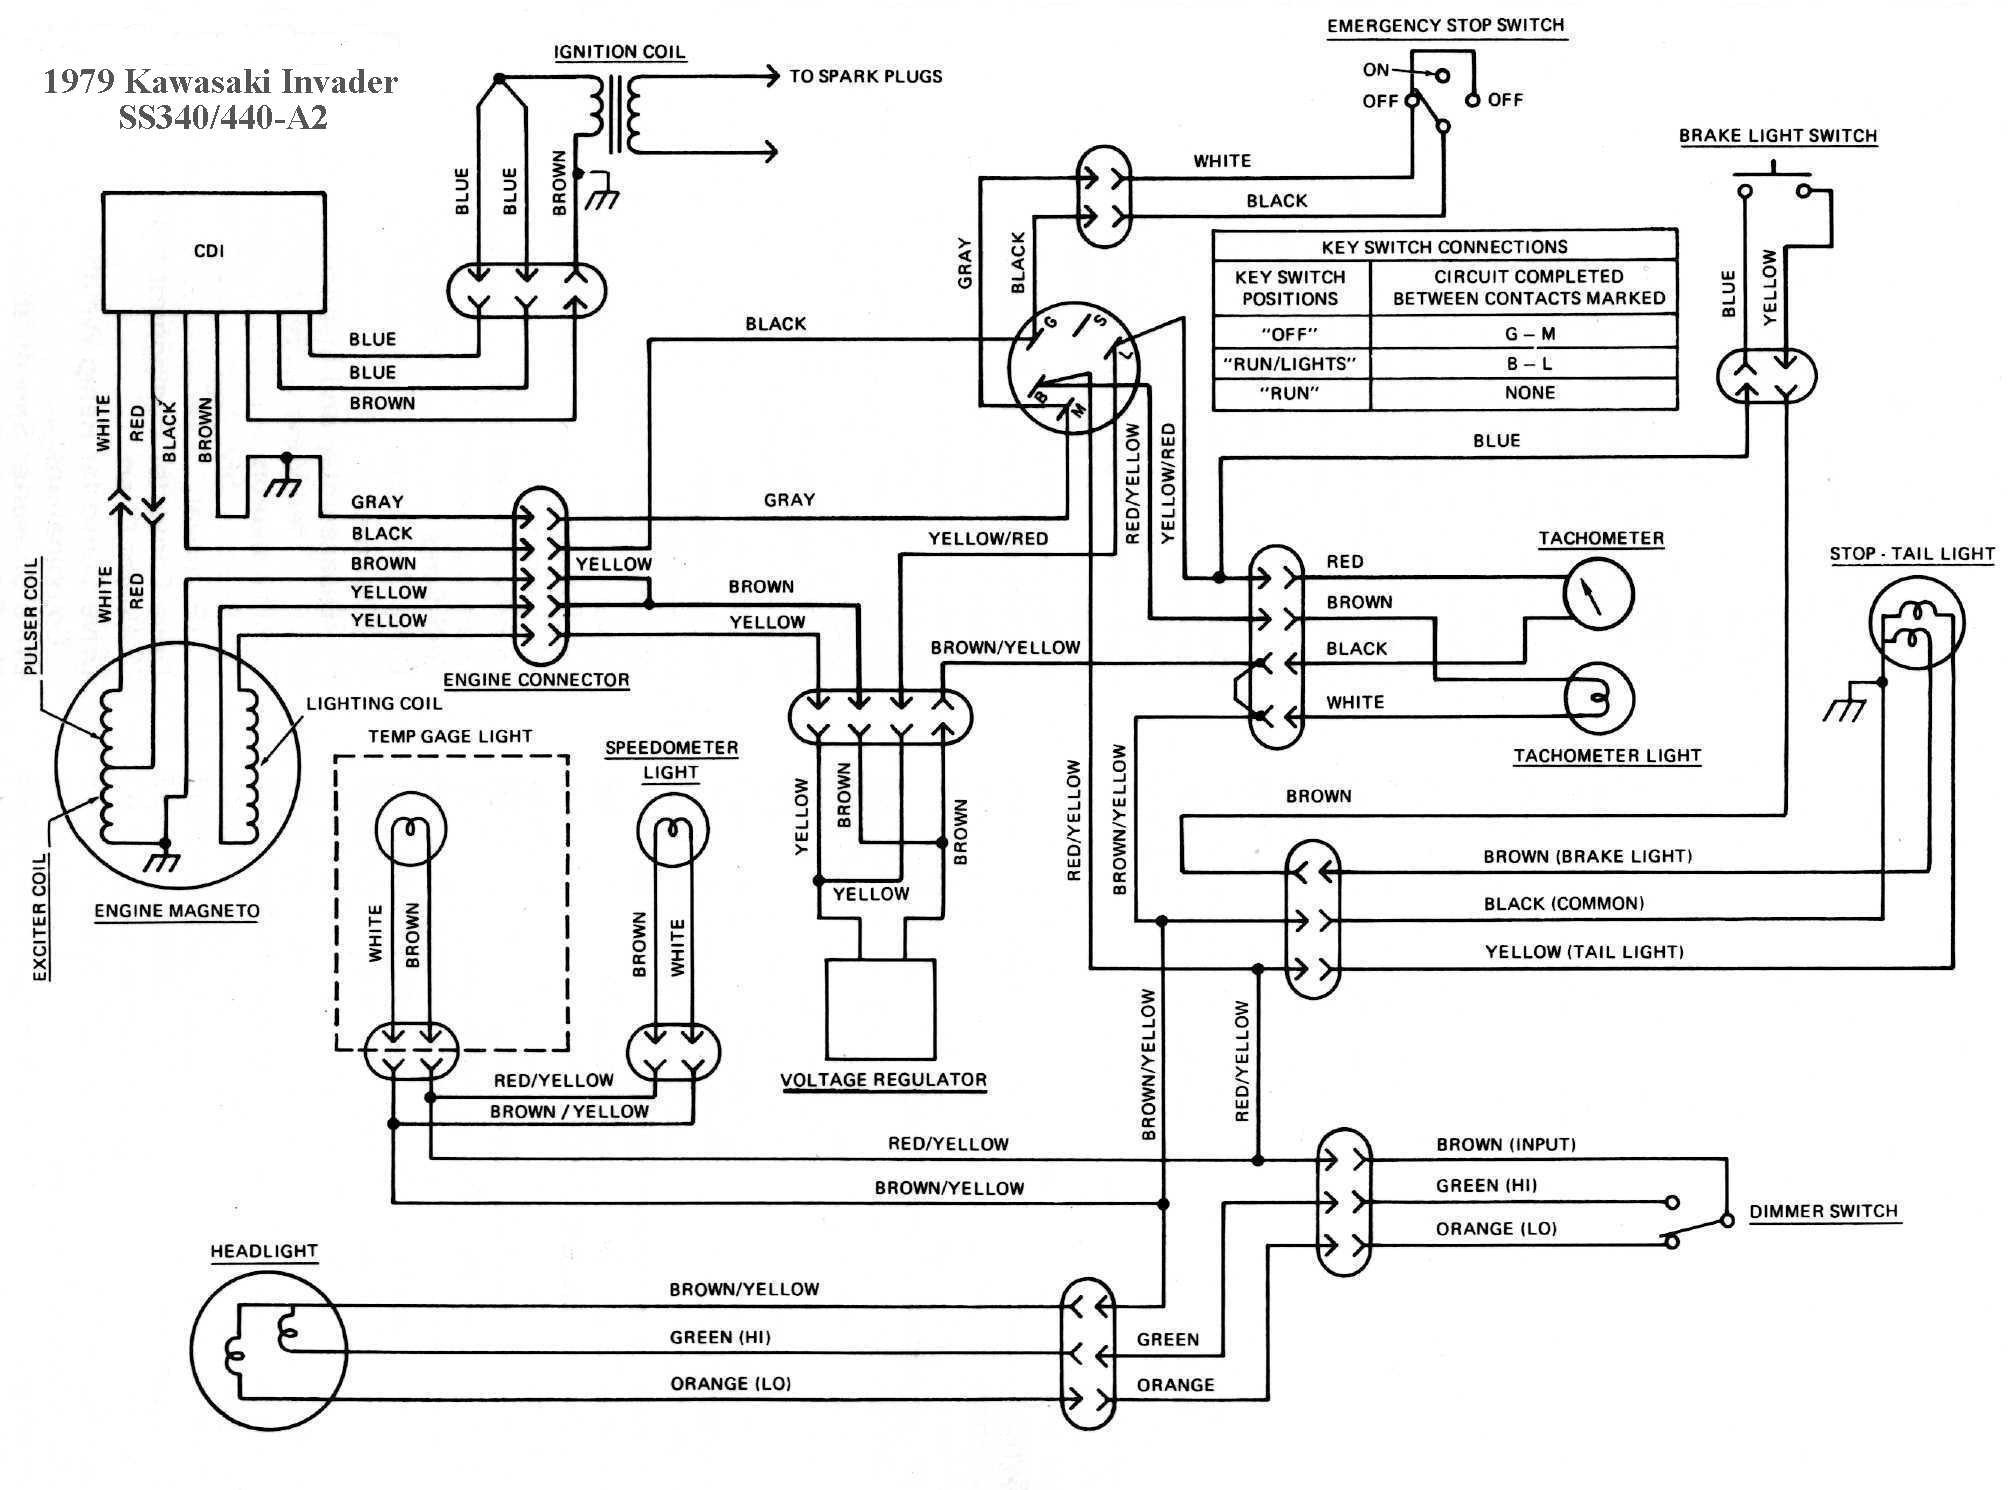 Kawasaki Bayou 220 Wiring Harness Diagram - Wiring Diagram Data - Kawasaki Bayou 220 Wiring Diagram